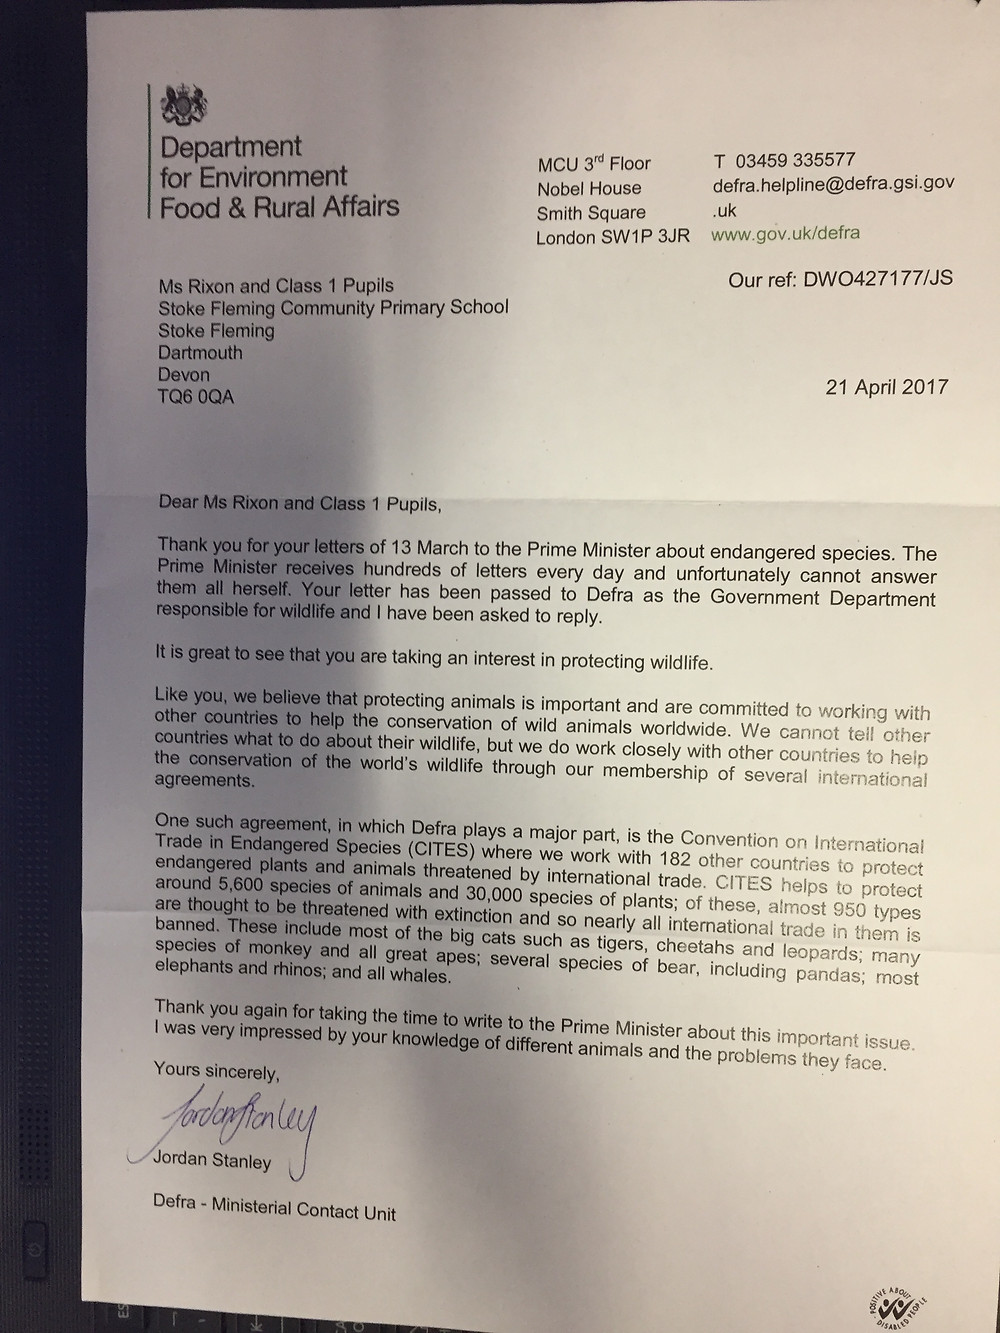 In addition to the letter from Downing Street Discovery Class have also received a letter from The Department for Environment Food and Rural Afairs in response to their letters about protecting wildlife.